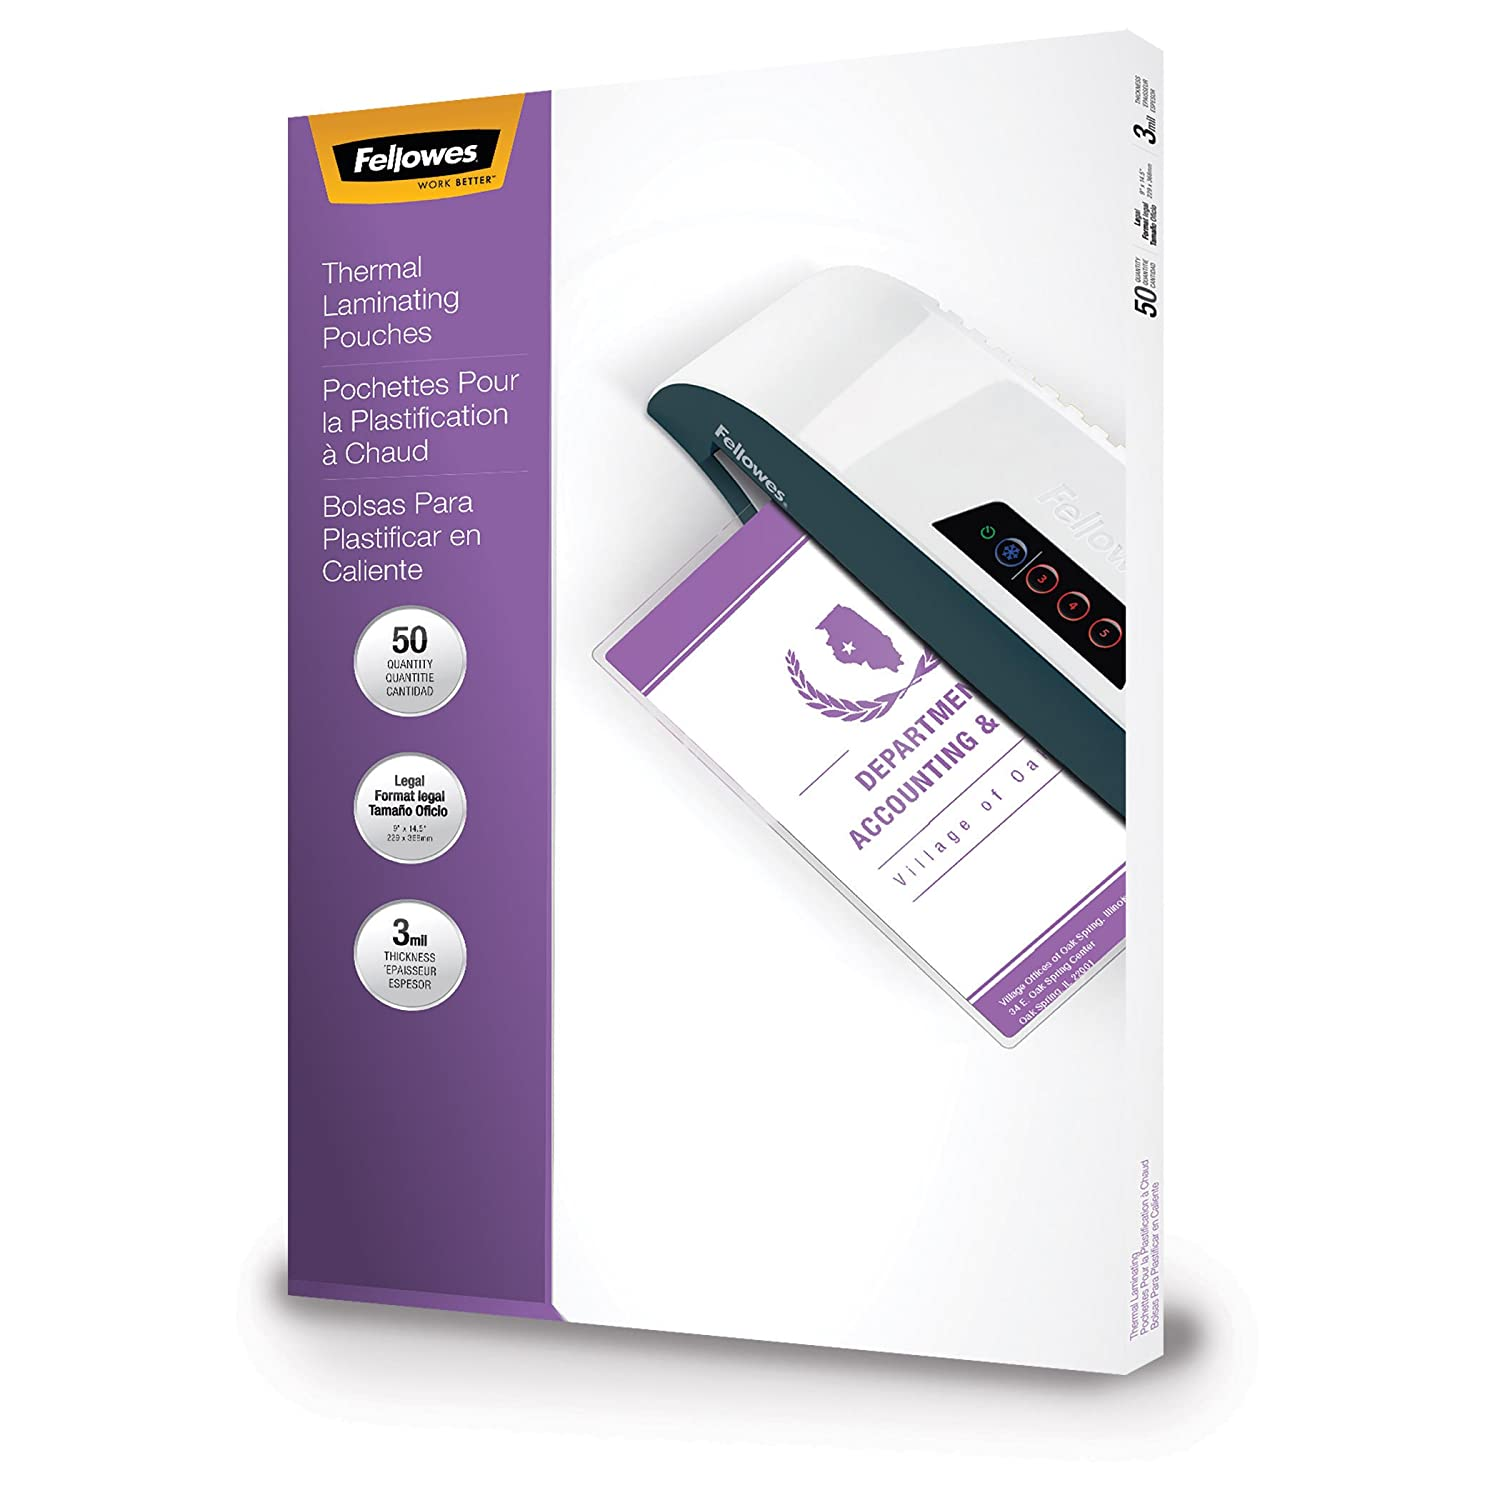 FELLOWES FLW52226, Glossy Legal Document Laminating Pouches, 50-Pack Fellowes Canada Ltd